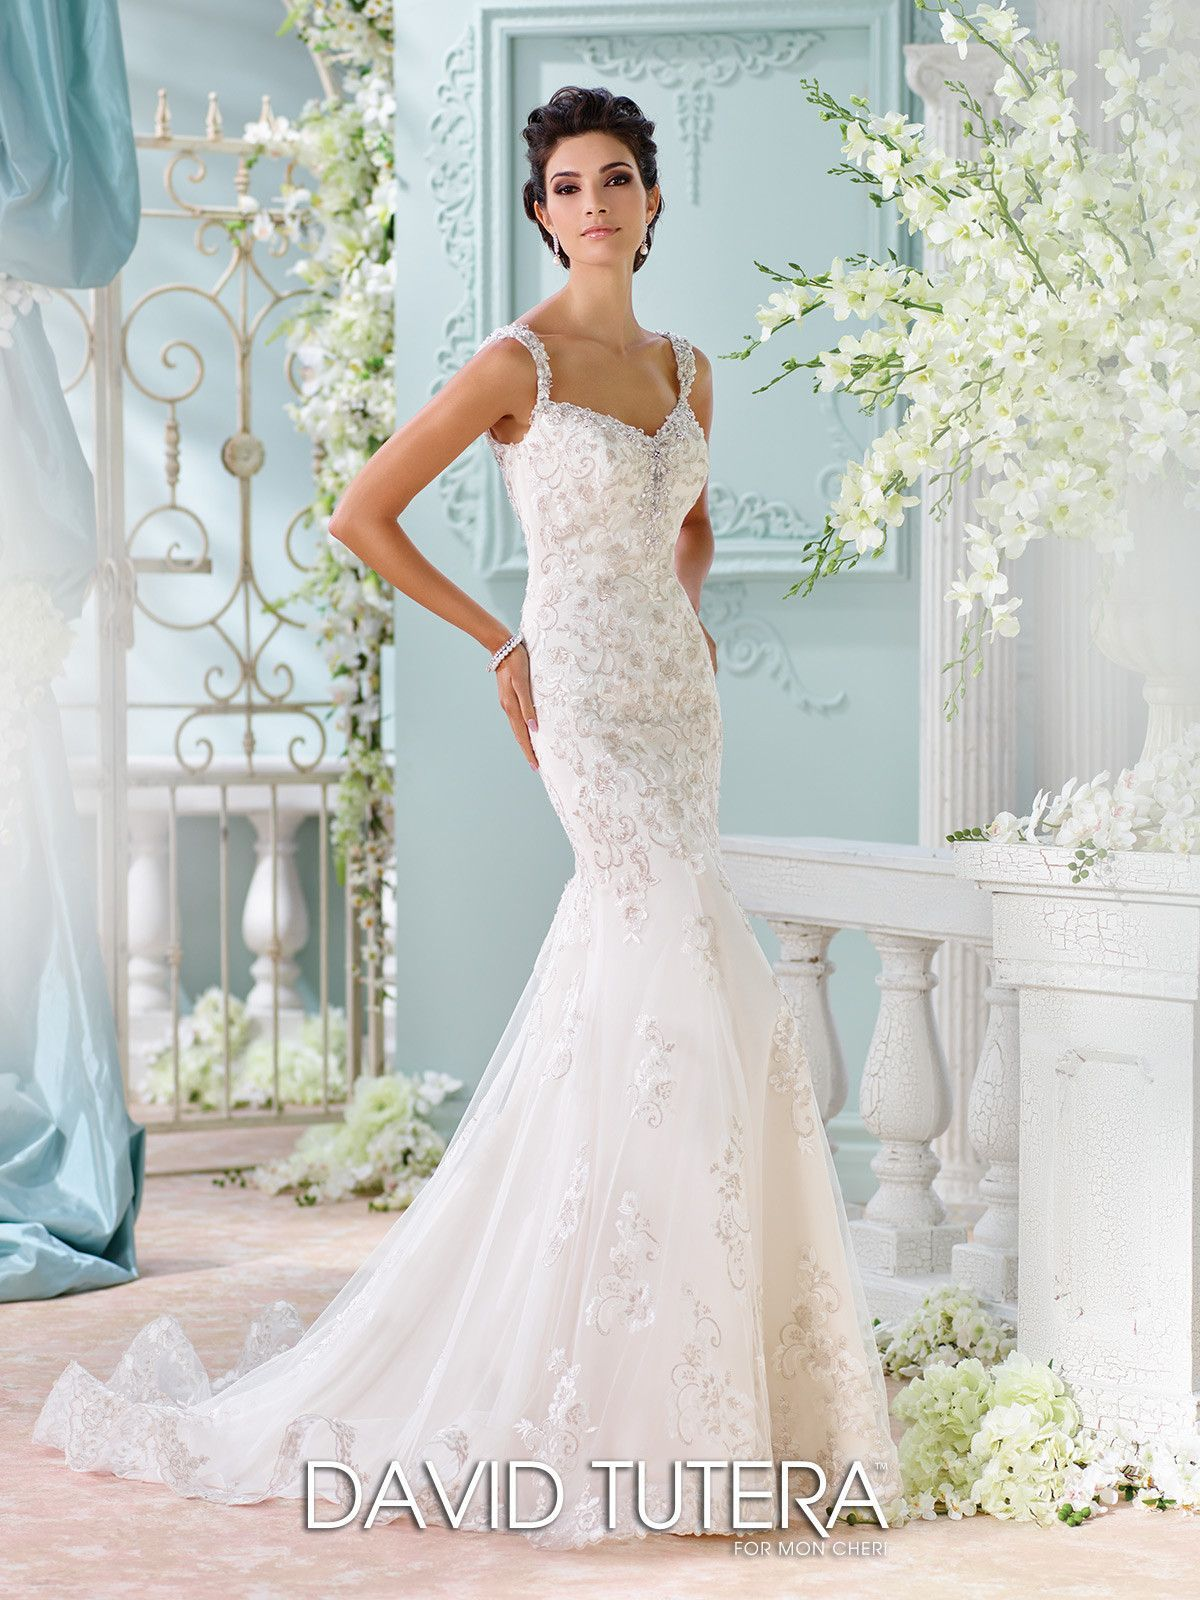 Dorable Amanda Holden Wedding Dress Colección de Imágenes - Ideas de ...